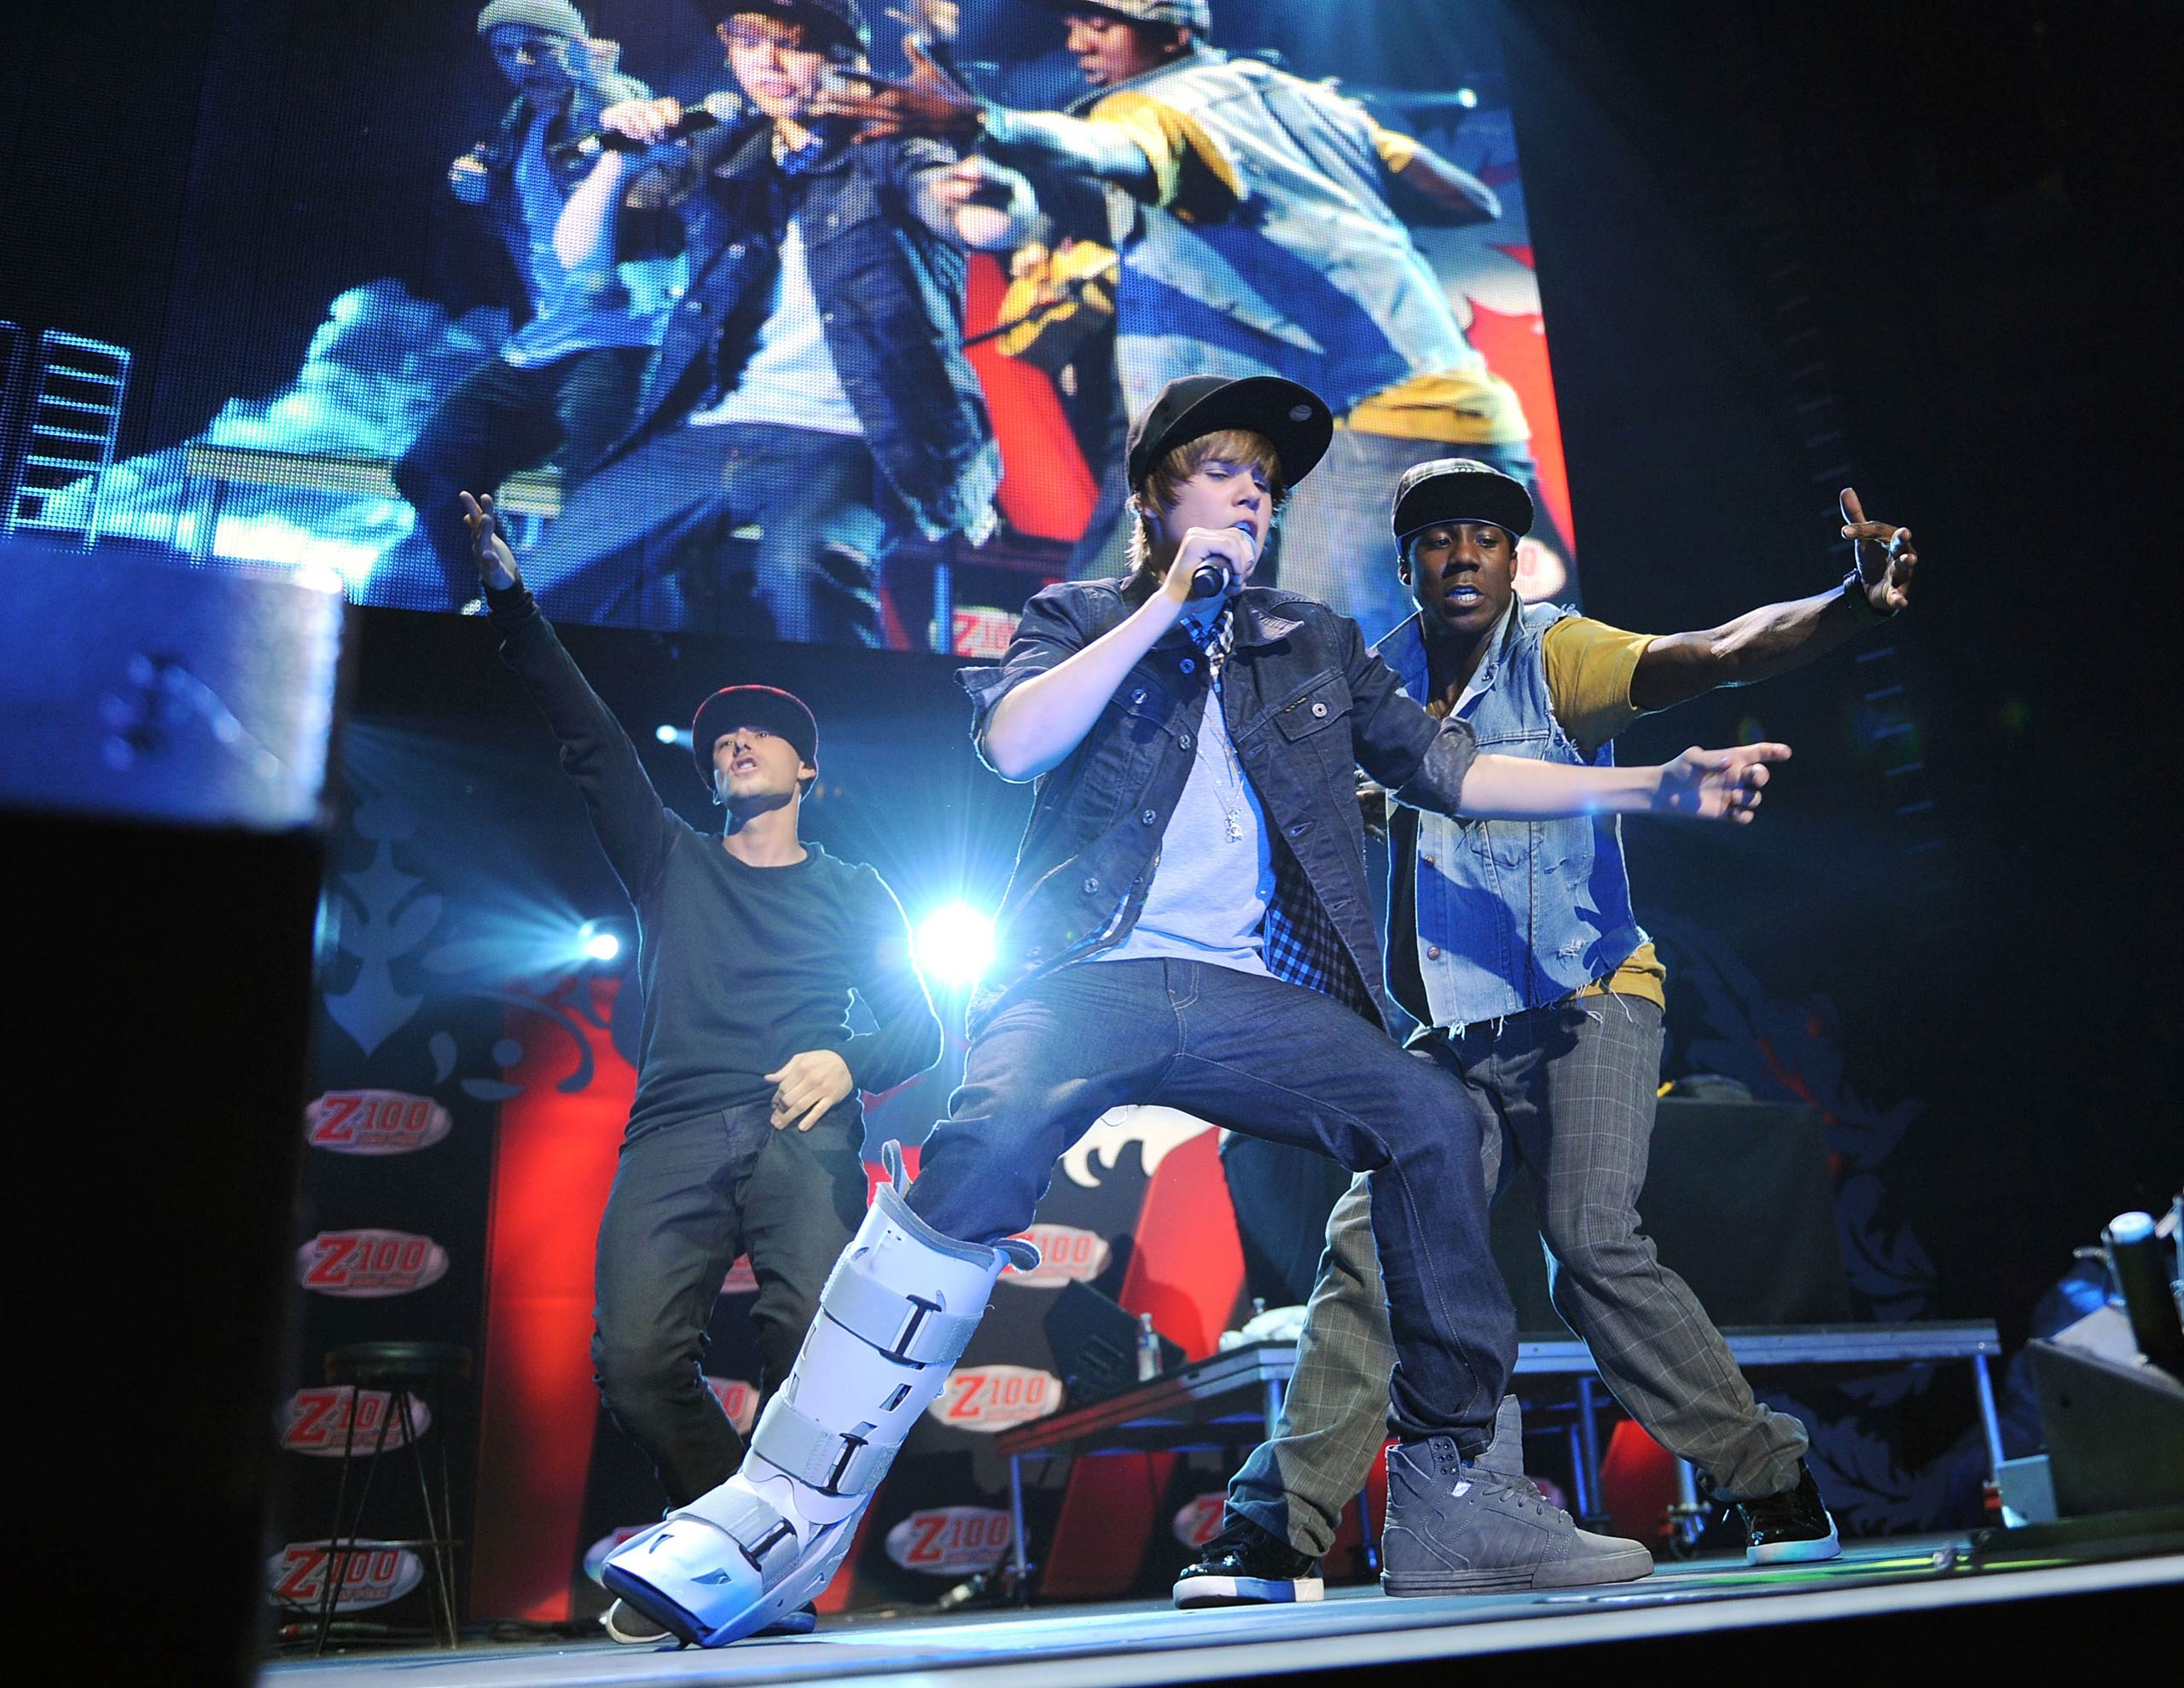 Justin Bieber performs onstage during Z100's Jingle Ball 2009 at Madison Square Garden in New York City in 2009.